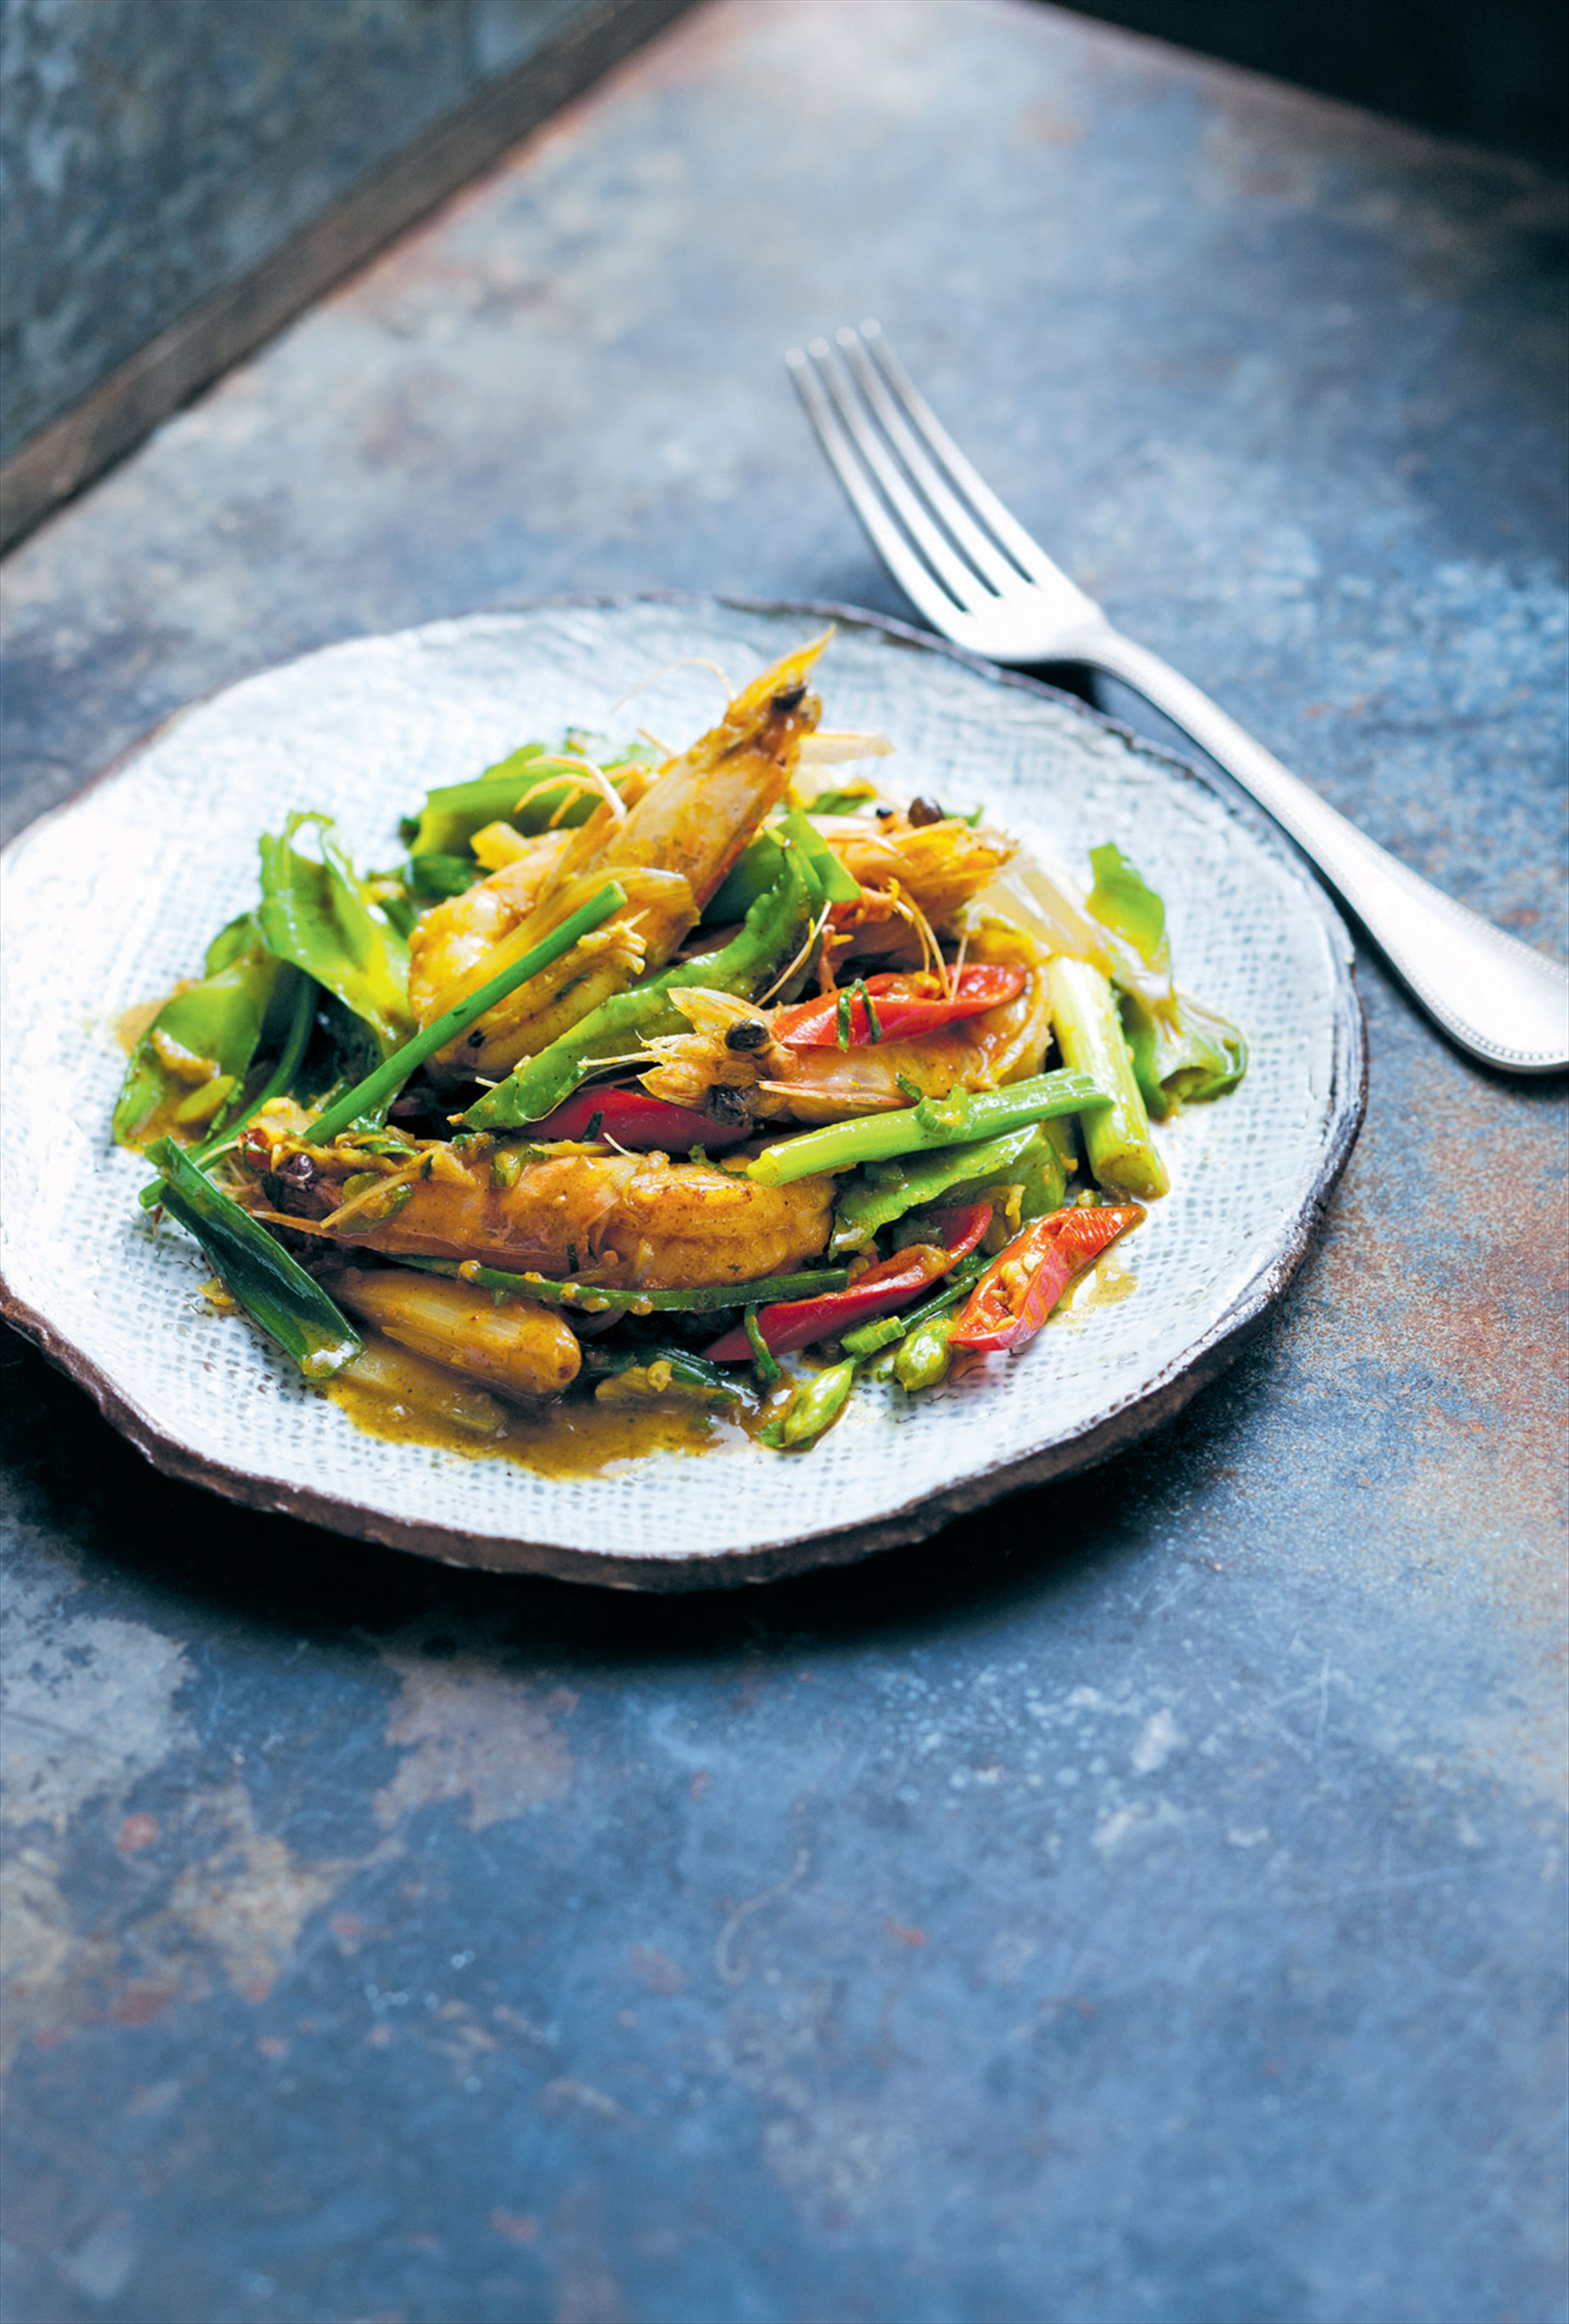 Prawns with Asian celery and curry powder